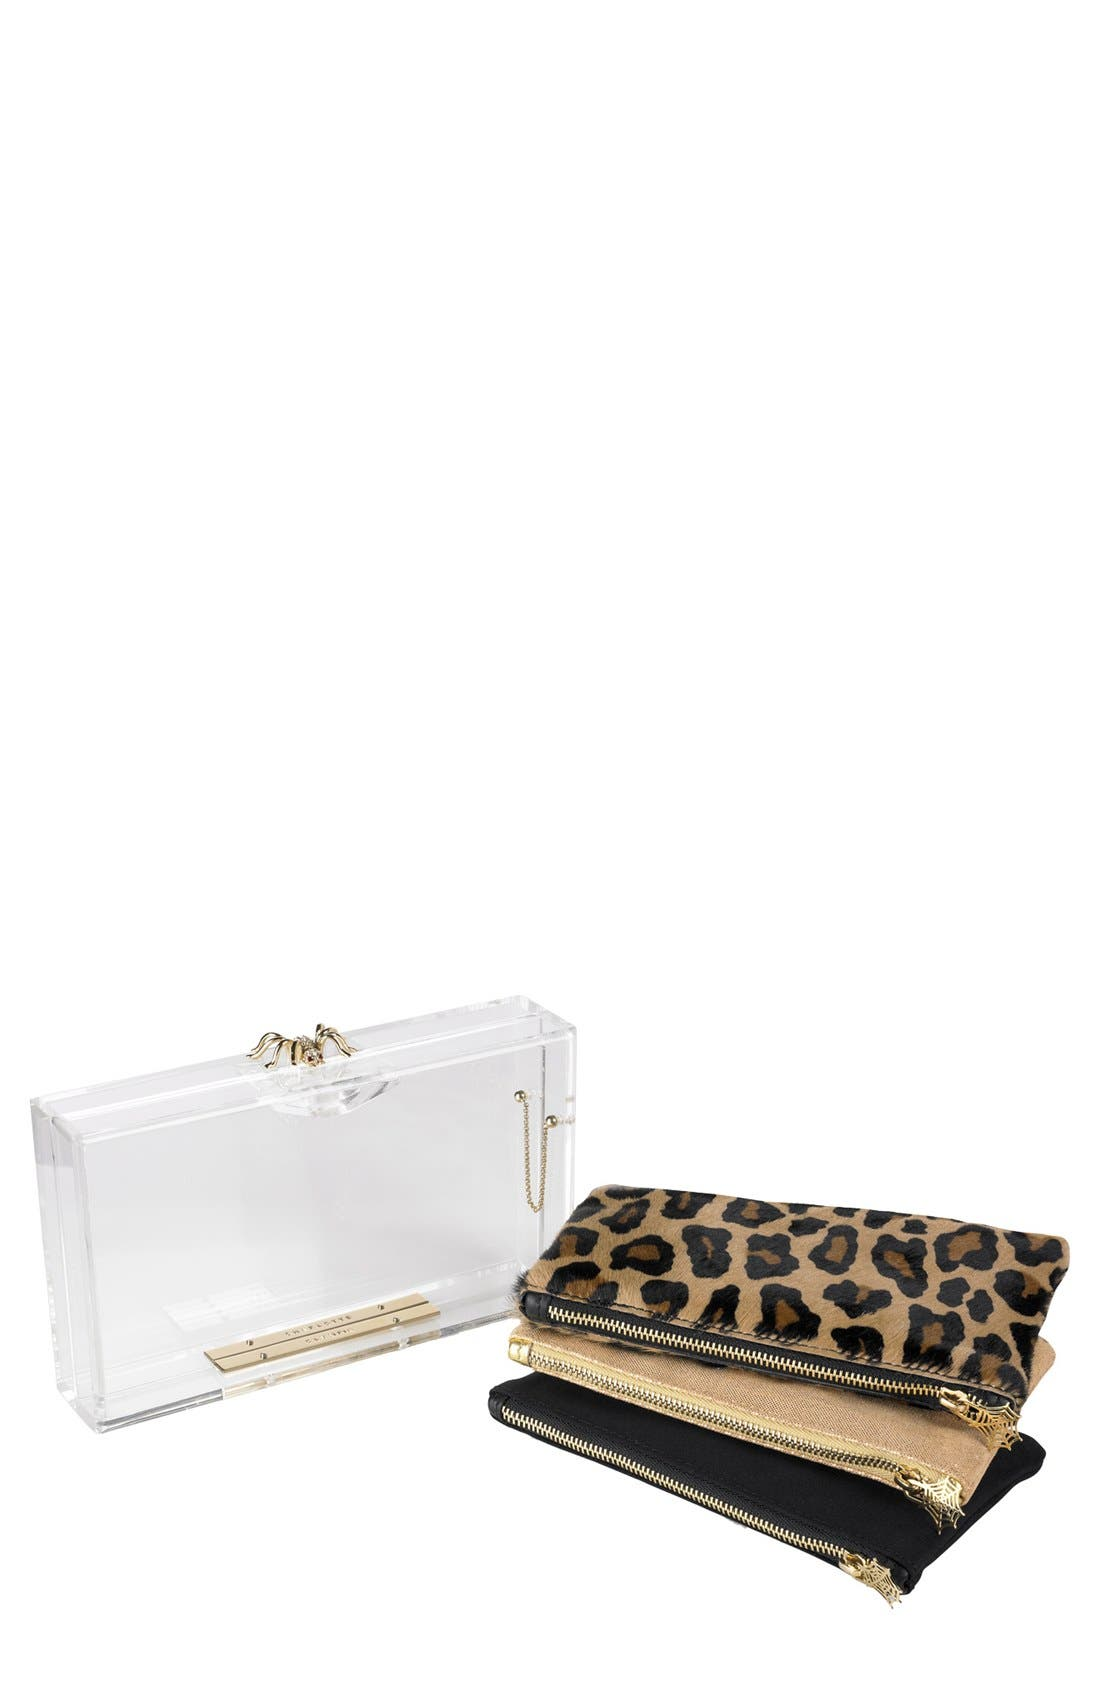 Alternate Image 1 Selected - Charlotte Olympia 'Pandora' Clutch